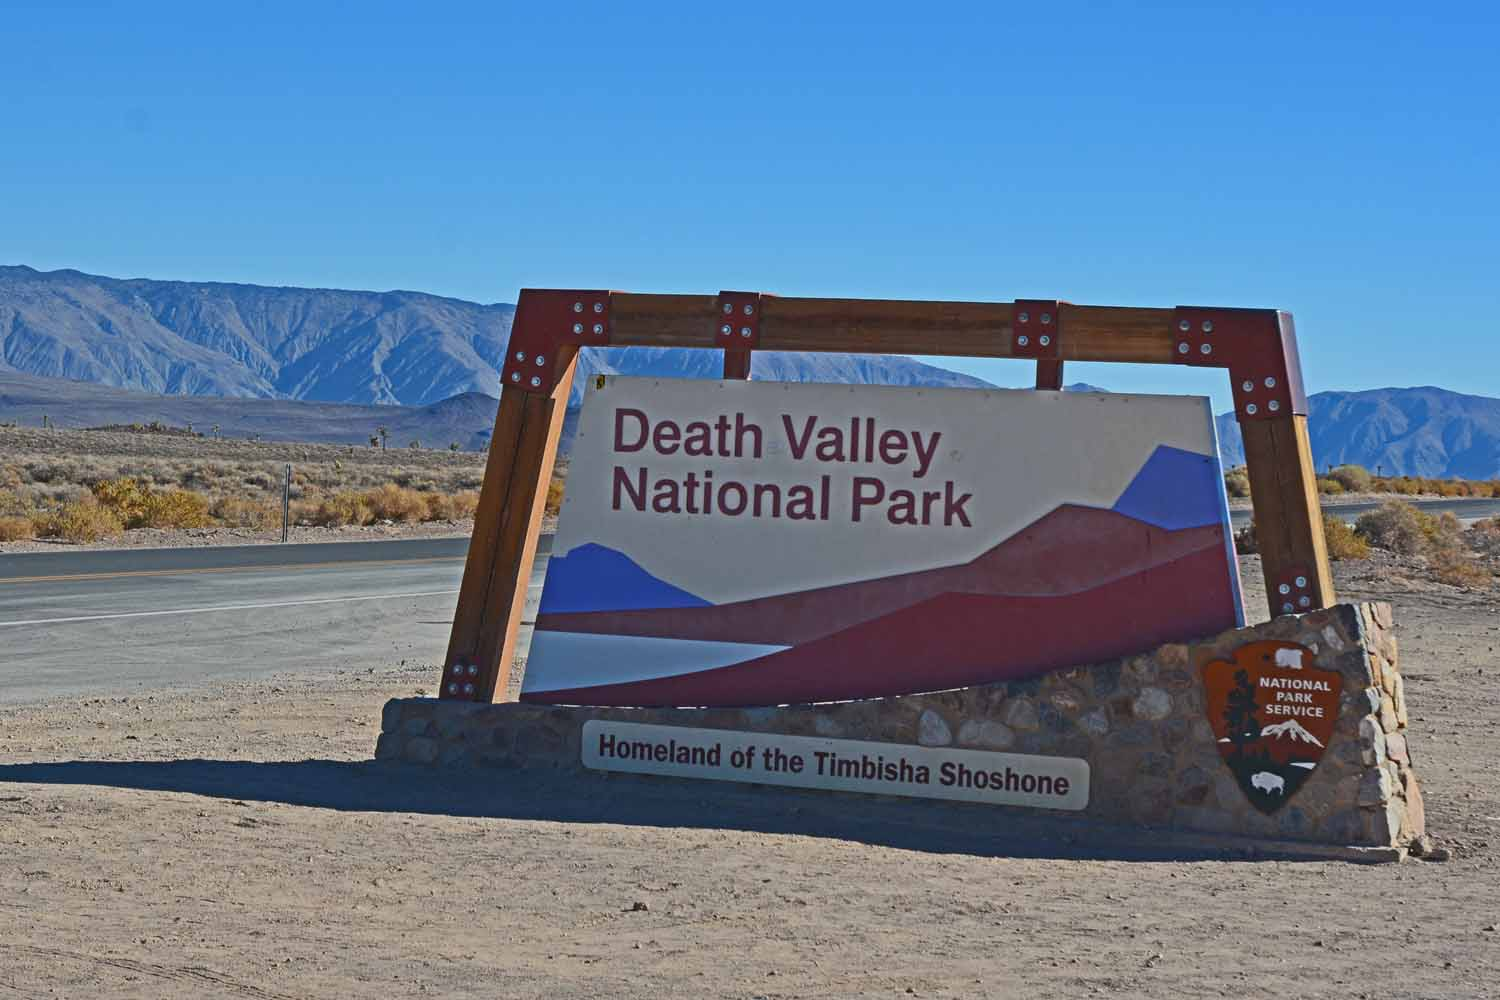 Death Valley was an unknown.  At the end of the day it was a great experience.  It is a huge area and we drove over 250 miles in one day just taking in all that it had to offer.